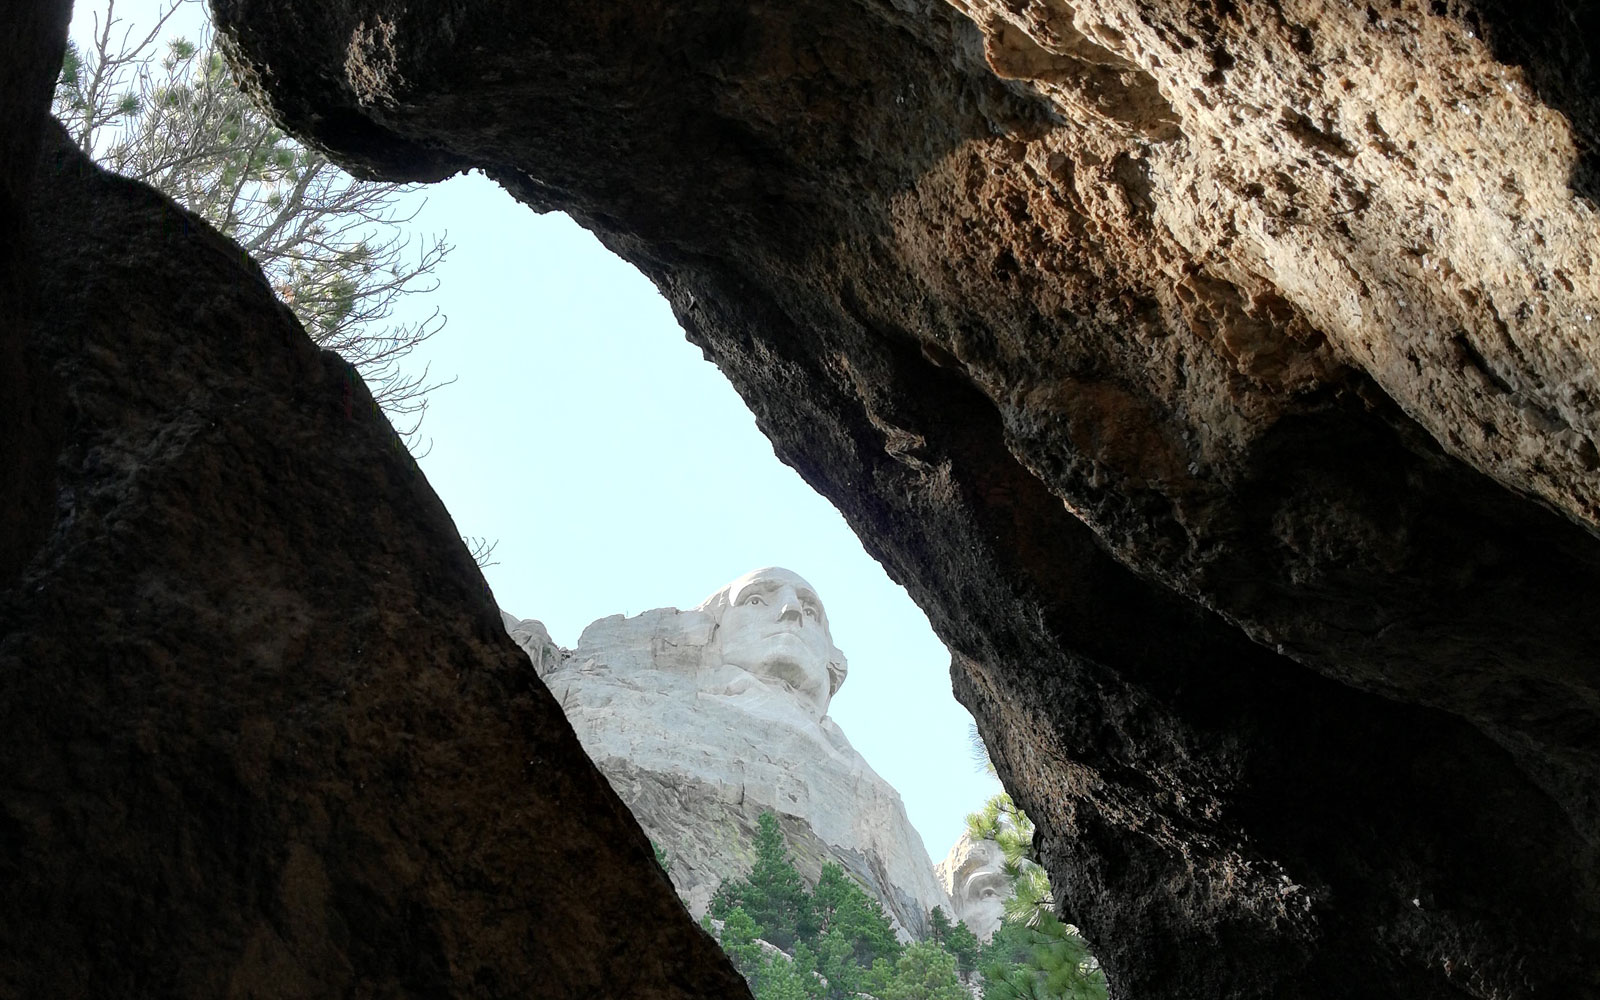 Photo of George Washington carving between two stone walls at Mount Rushmore in South Dakota